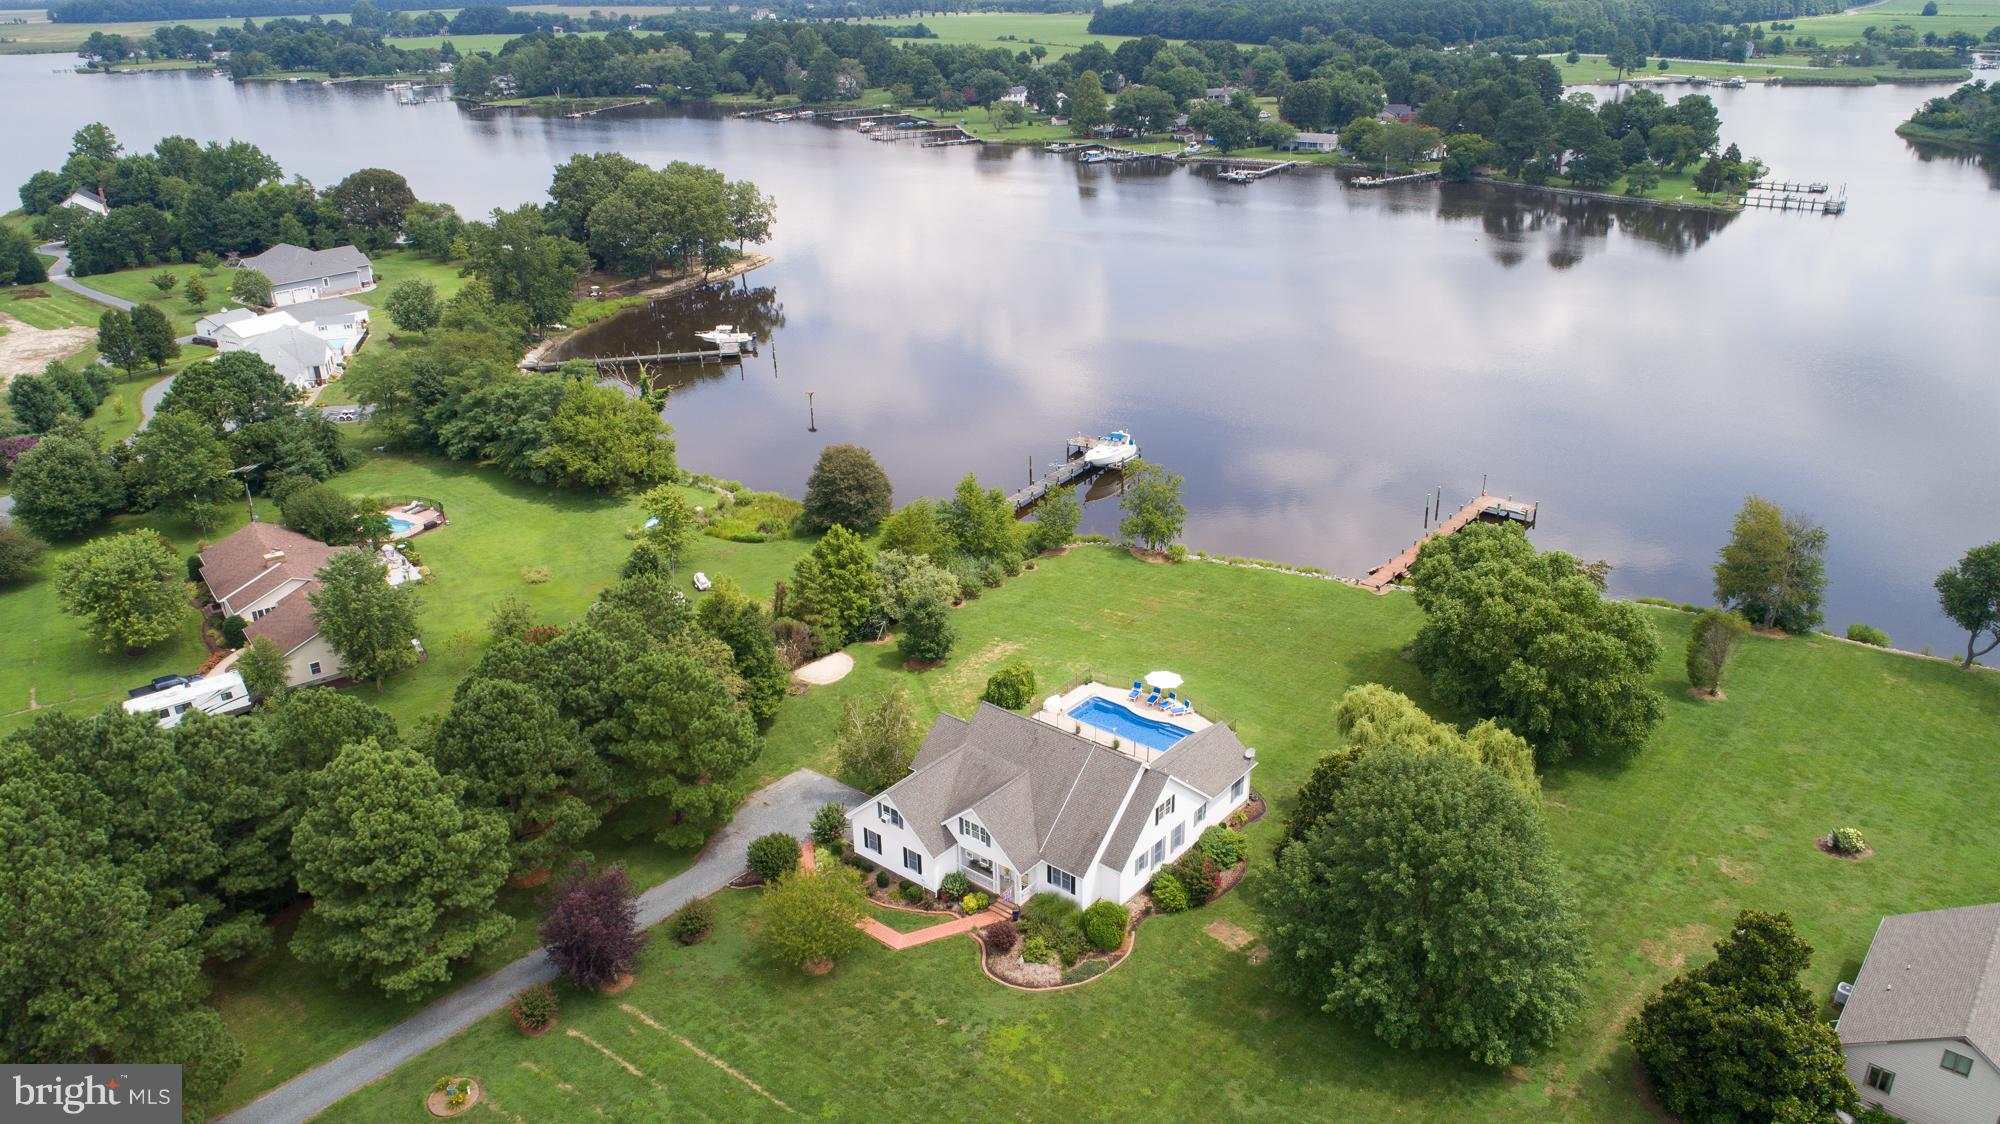 Price Reduction on this Impeccably maintained waterfront home featuring an open concept floor plan w/ 4BR's, 2.5BA's , eat-in kitchen, living room w/cathedral ceiling and gas FP, sep dining room, 2-car garage w/ bonus room above garage, screened in porch overlooks fiberglass in-ground saltwater heated Jacuzzi pool, lots of windows to let the light in and enjoy the beautiful view of the water, pier with water and electric.